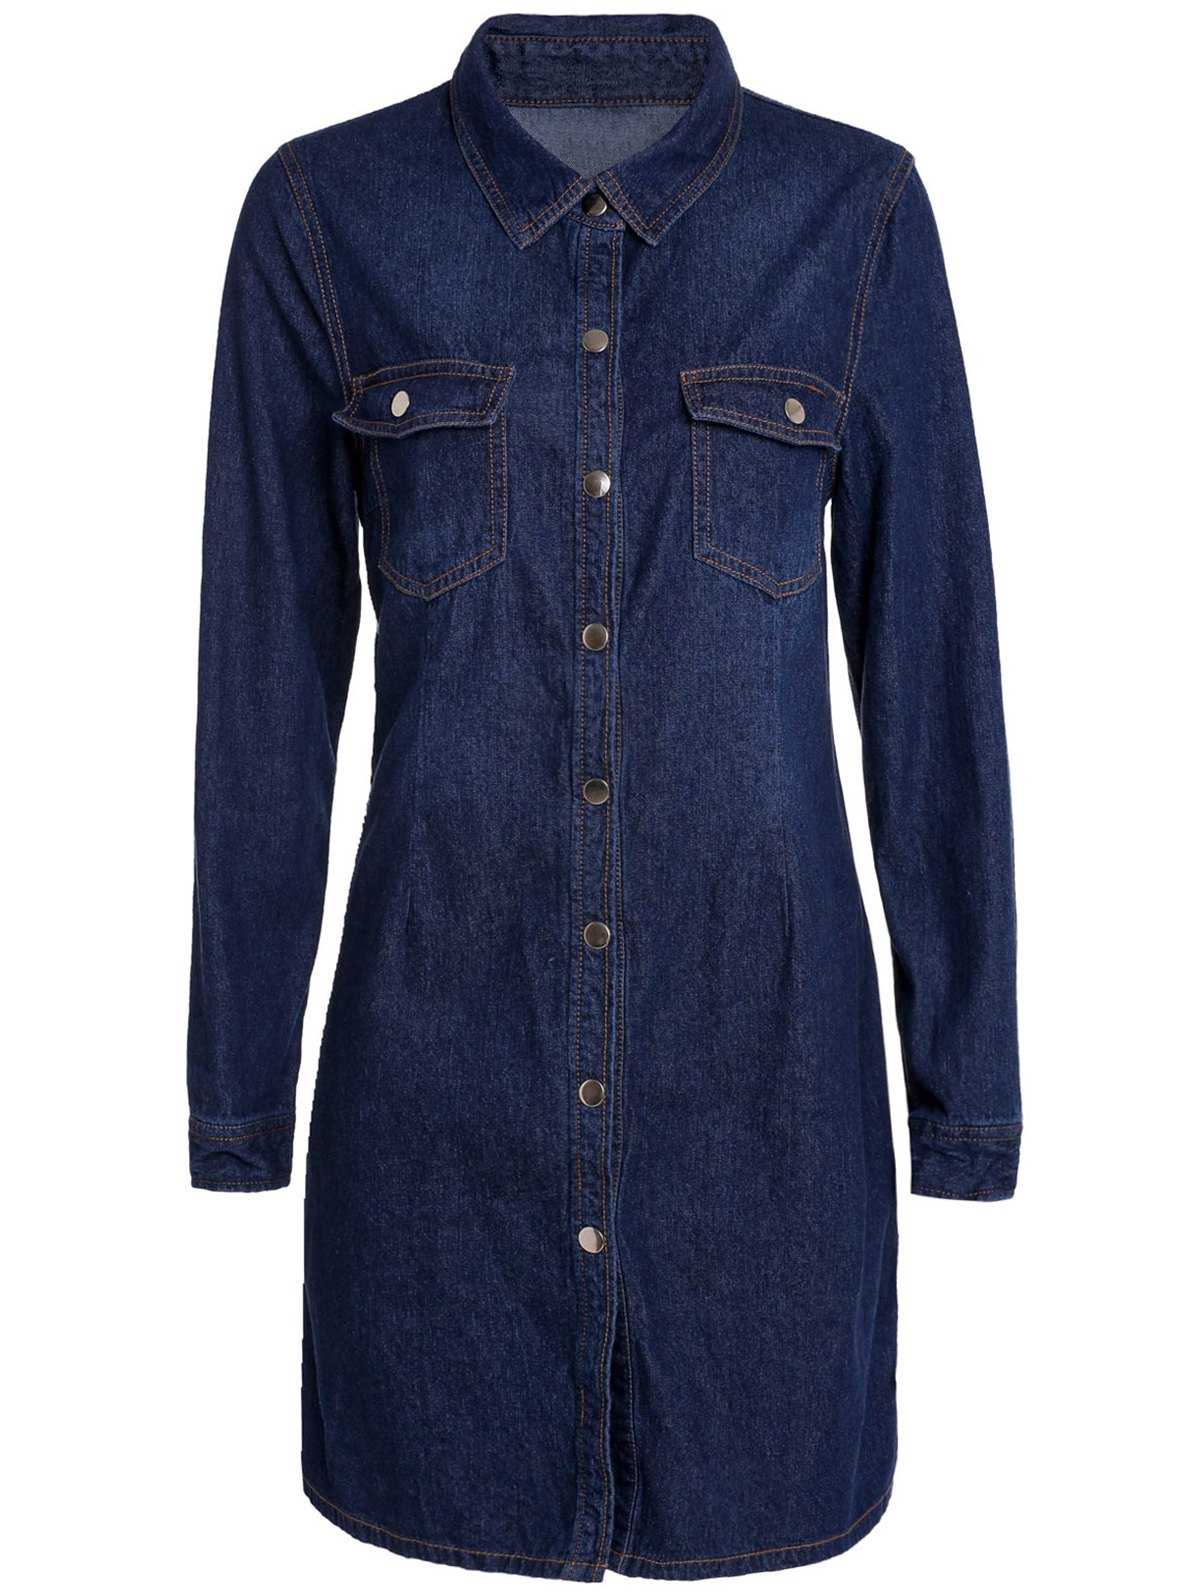 Elegant Shirt Collar Solid Color Long Sleeve Sheathy Denim Dress For Women - PURPLISH BLUE 2XL